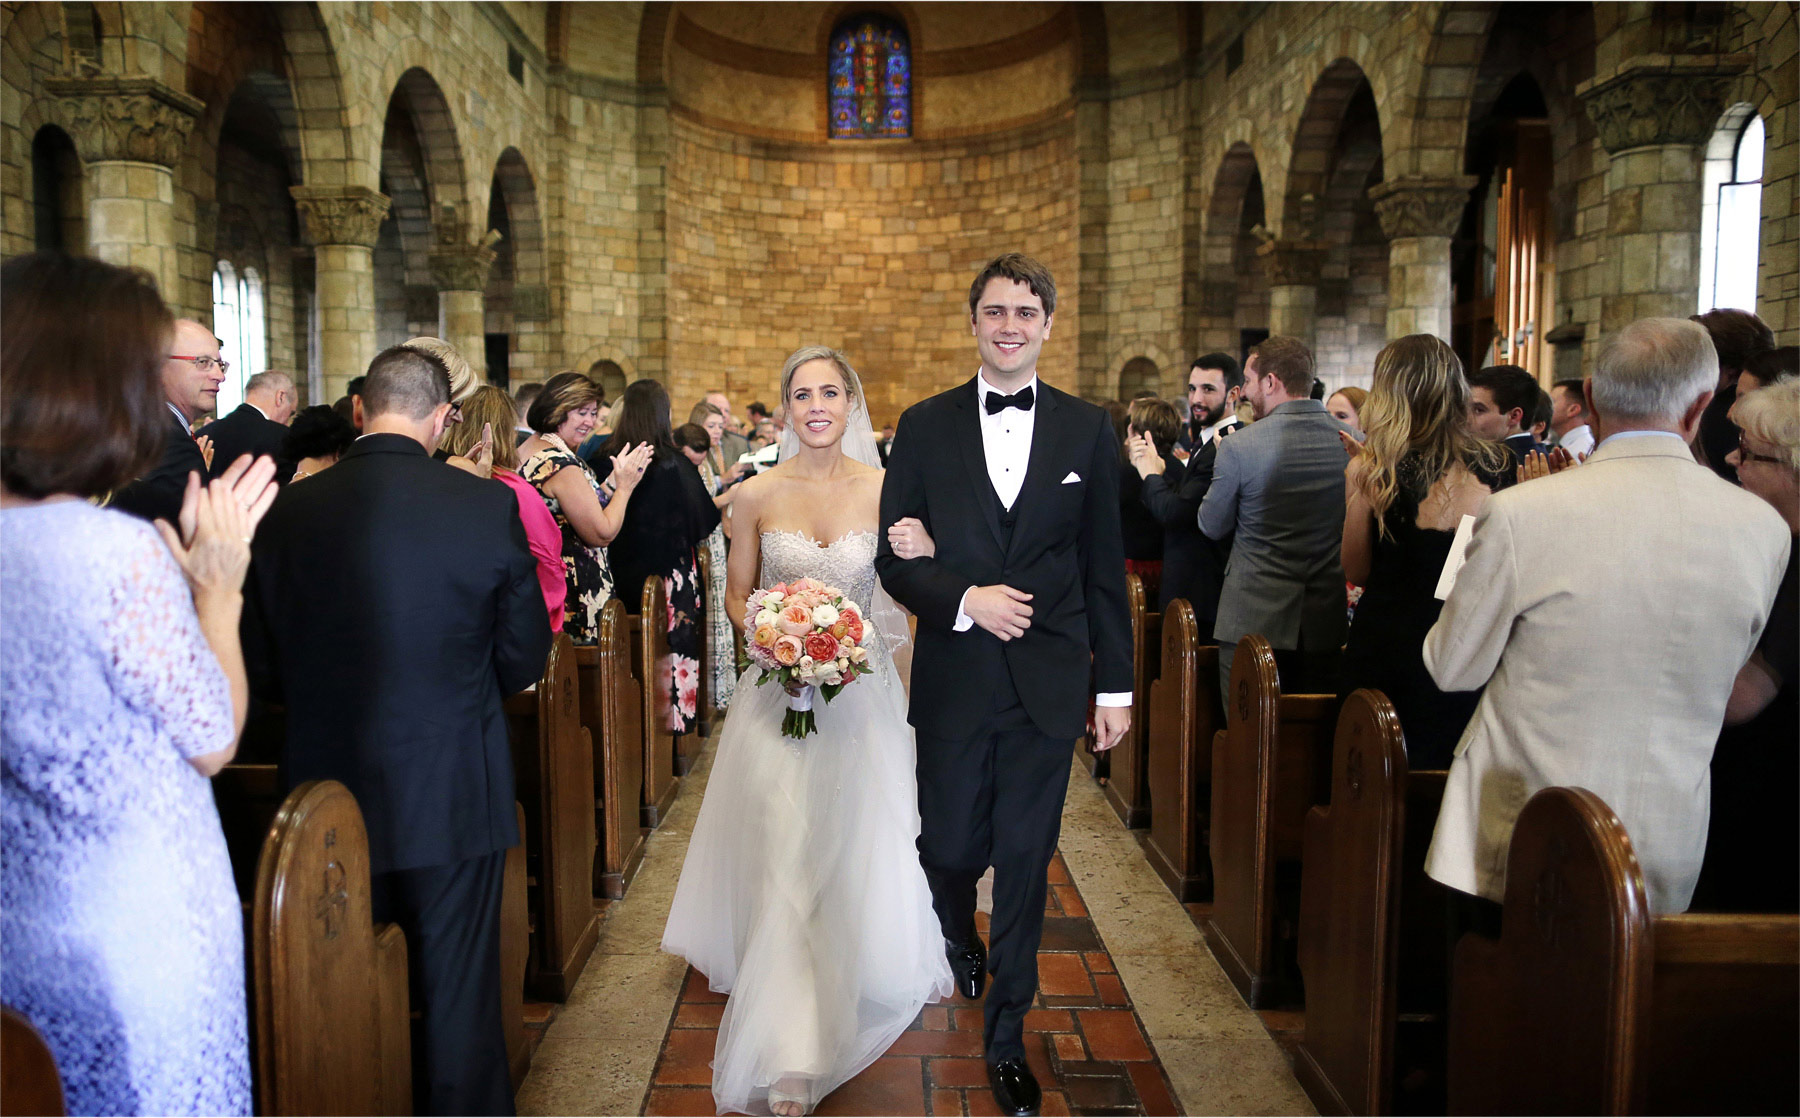 16-Saint-Paul-Minnesota-Wedding-Photographer-by-Andrew-Vick-Photography-Summer-Our-Lady-Of-Victory-Chapel-Church-Ceremony-Bride-Groom-Flowers-Recessional-Michelle-and-Kevin.jpg